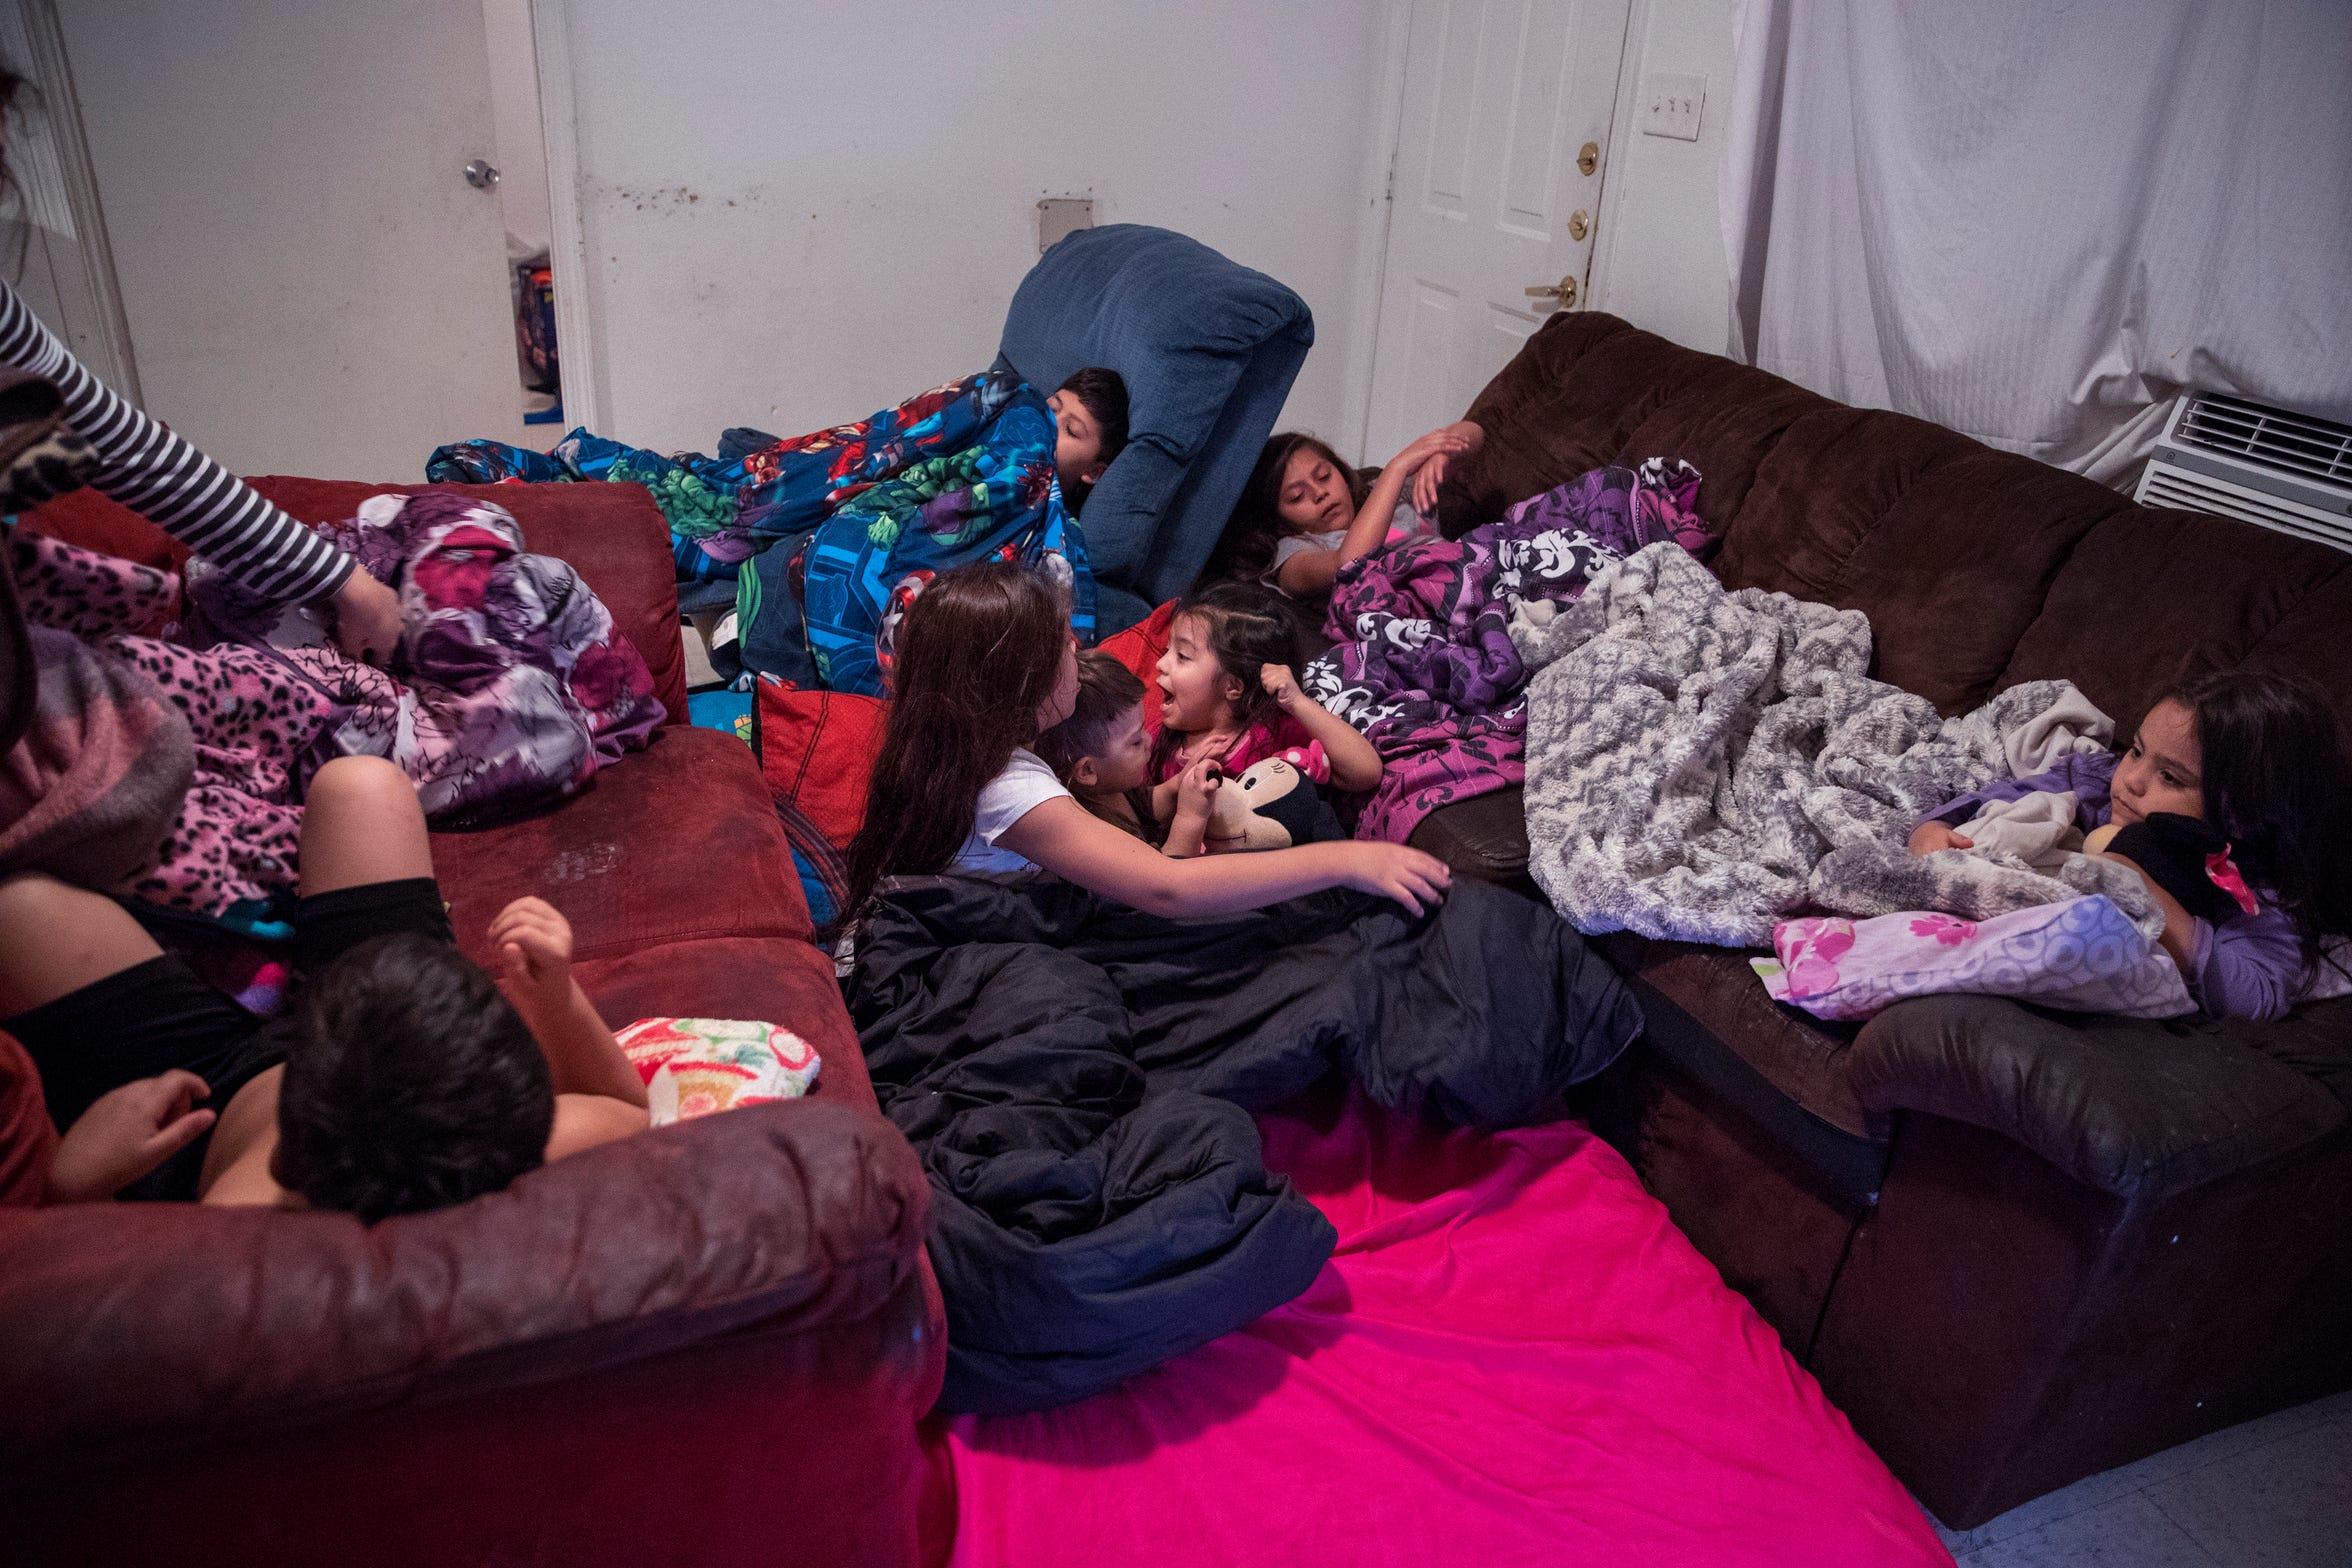 Deanna Martinez gets her kids ready for bed inthe living room to at Rincon Point Apartments in Taft in October. The family has been living in the living room since the air condition went out and the company failed to provide air conditioning window units for the children's bedrooms.